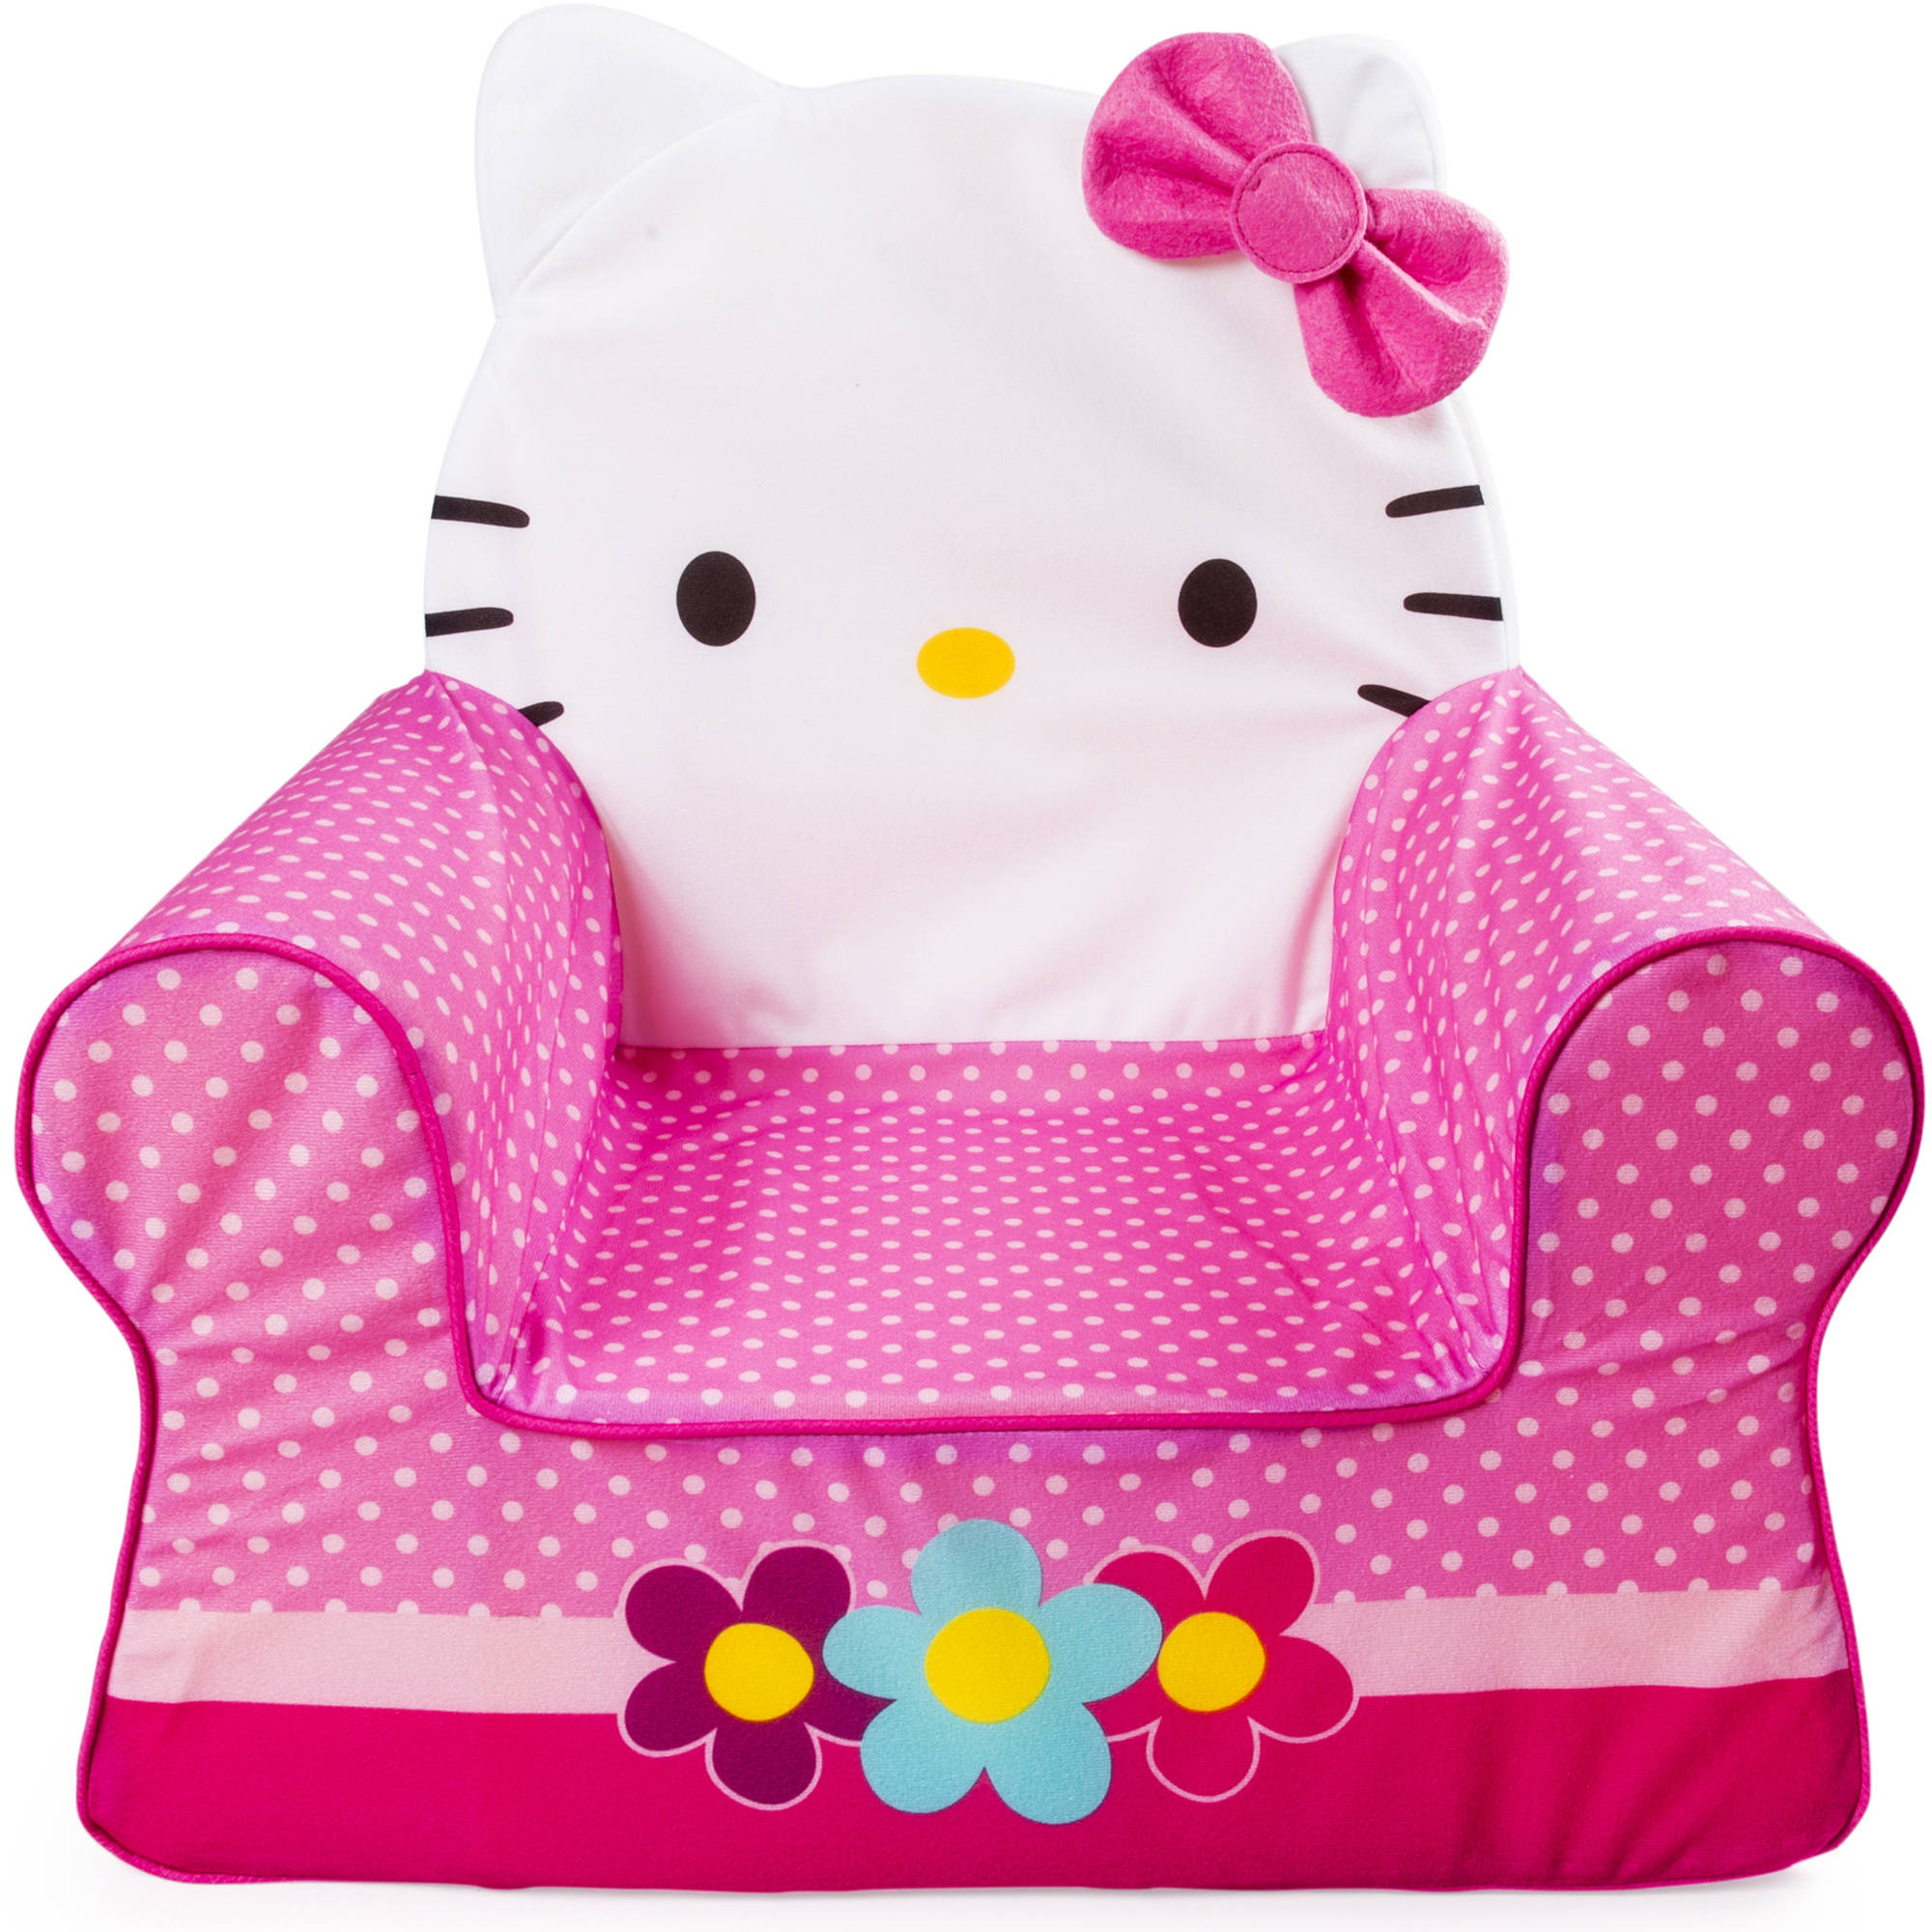 Marshmallow Furniture Comfy Character Chair, Hello Kitty